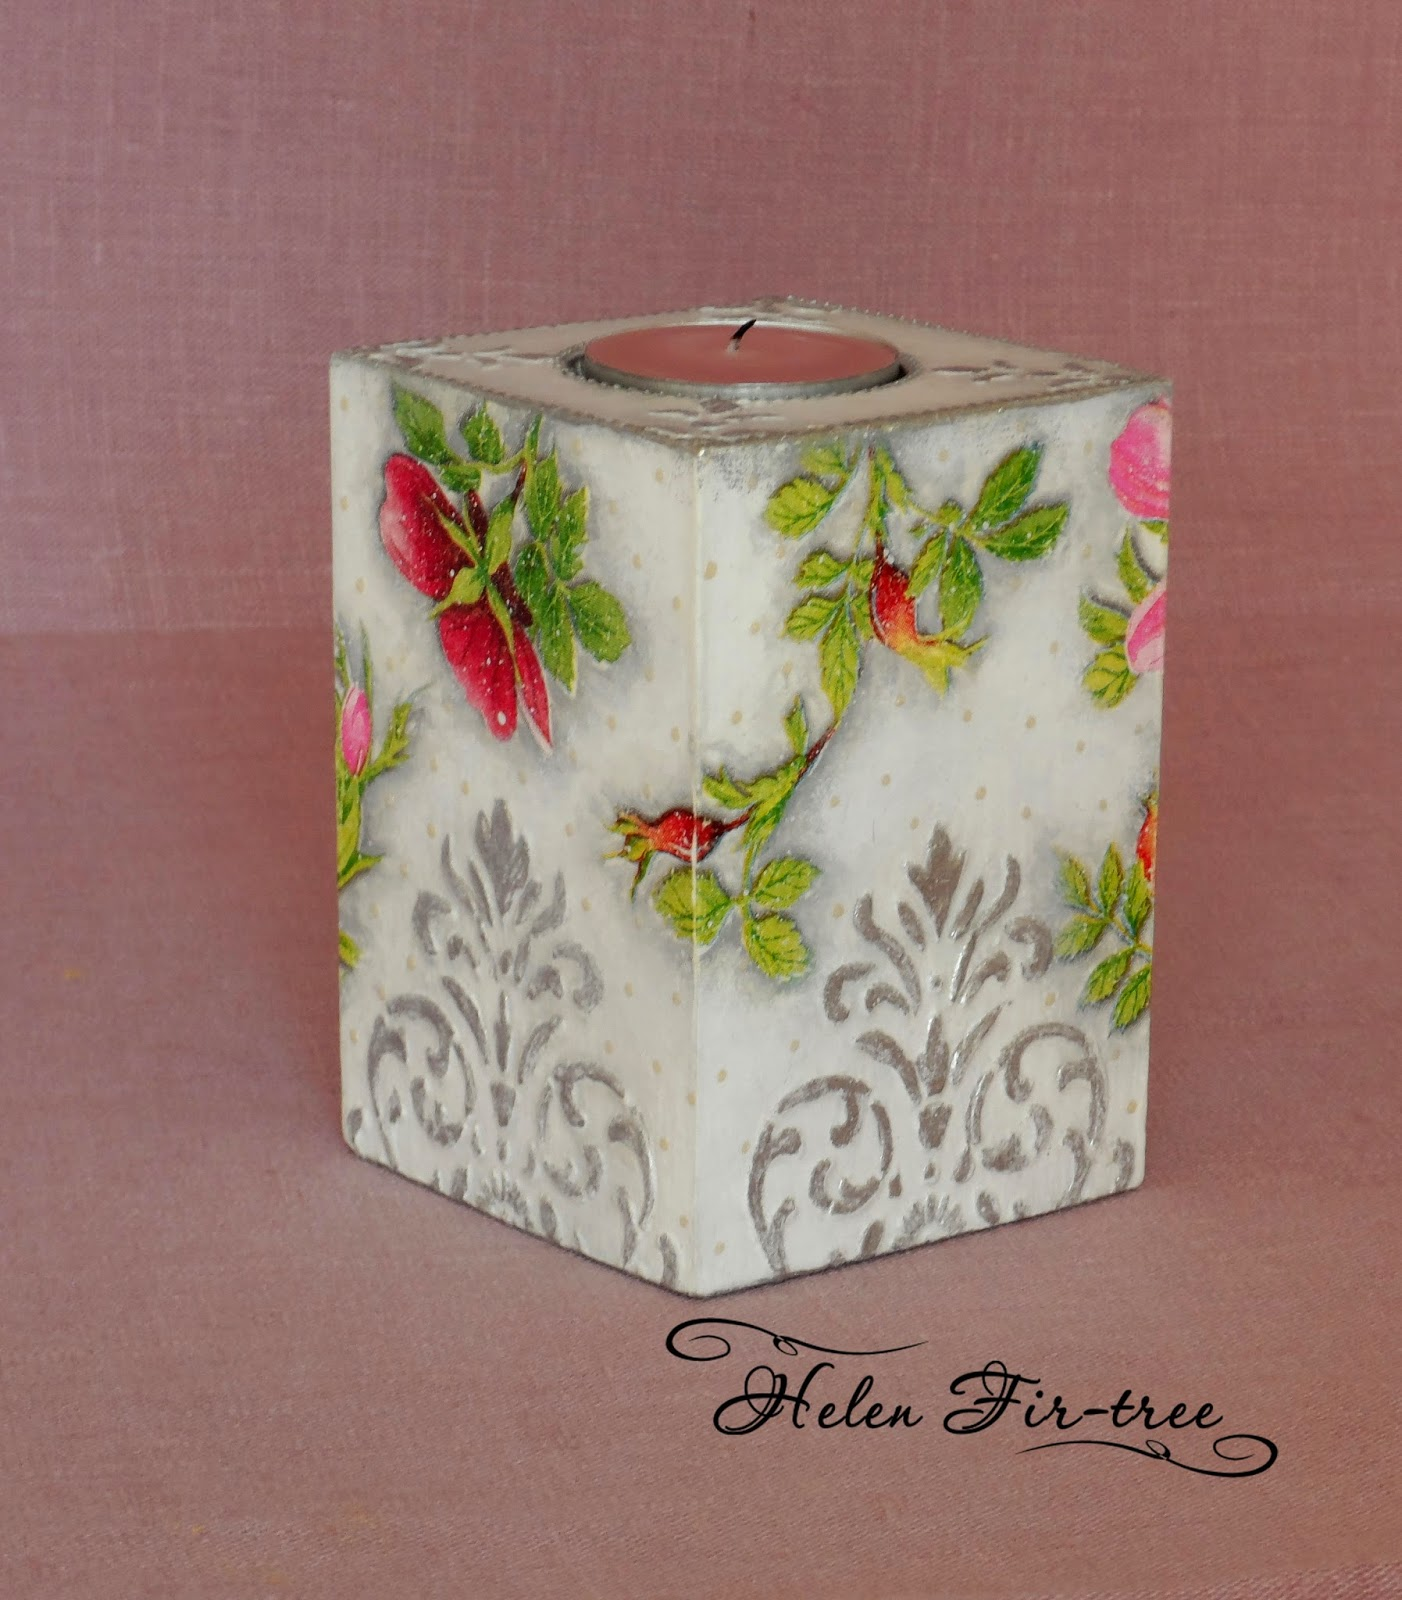 Helen Fir-tree декупаж подсвечник decoupage candle holder